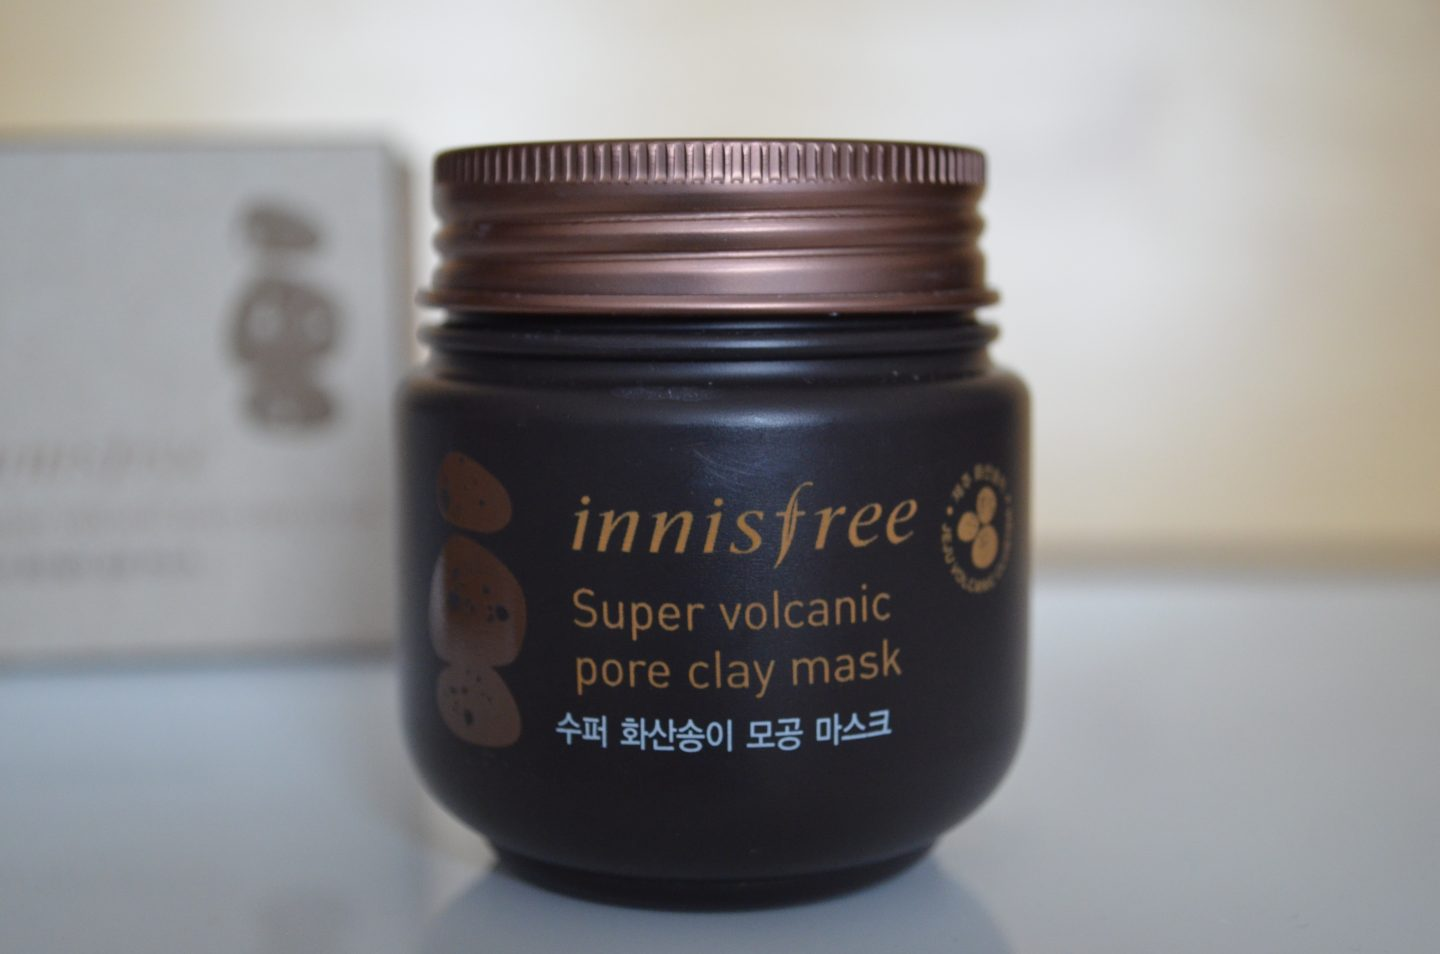 REVIEW: Innisfree Super Volcanic Pore Clay Mask